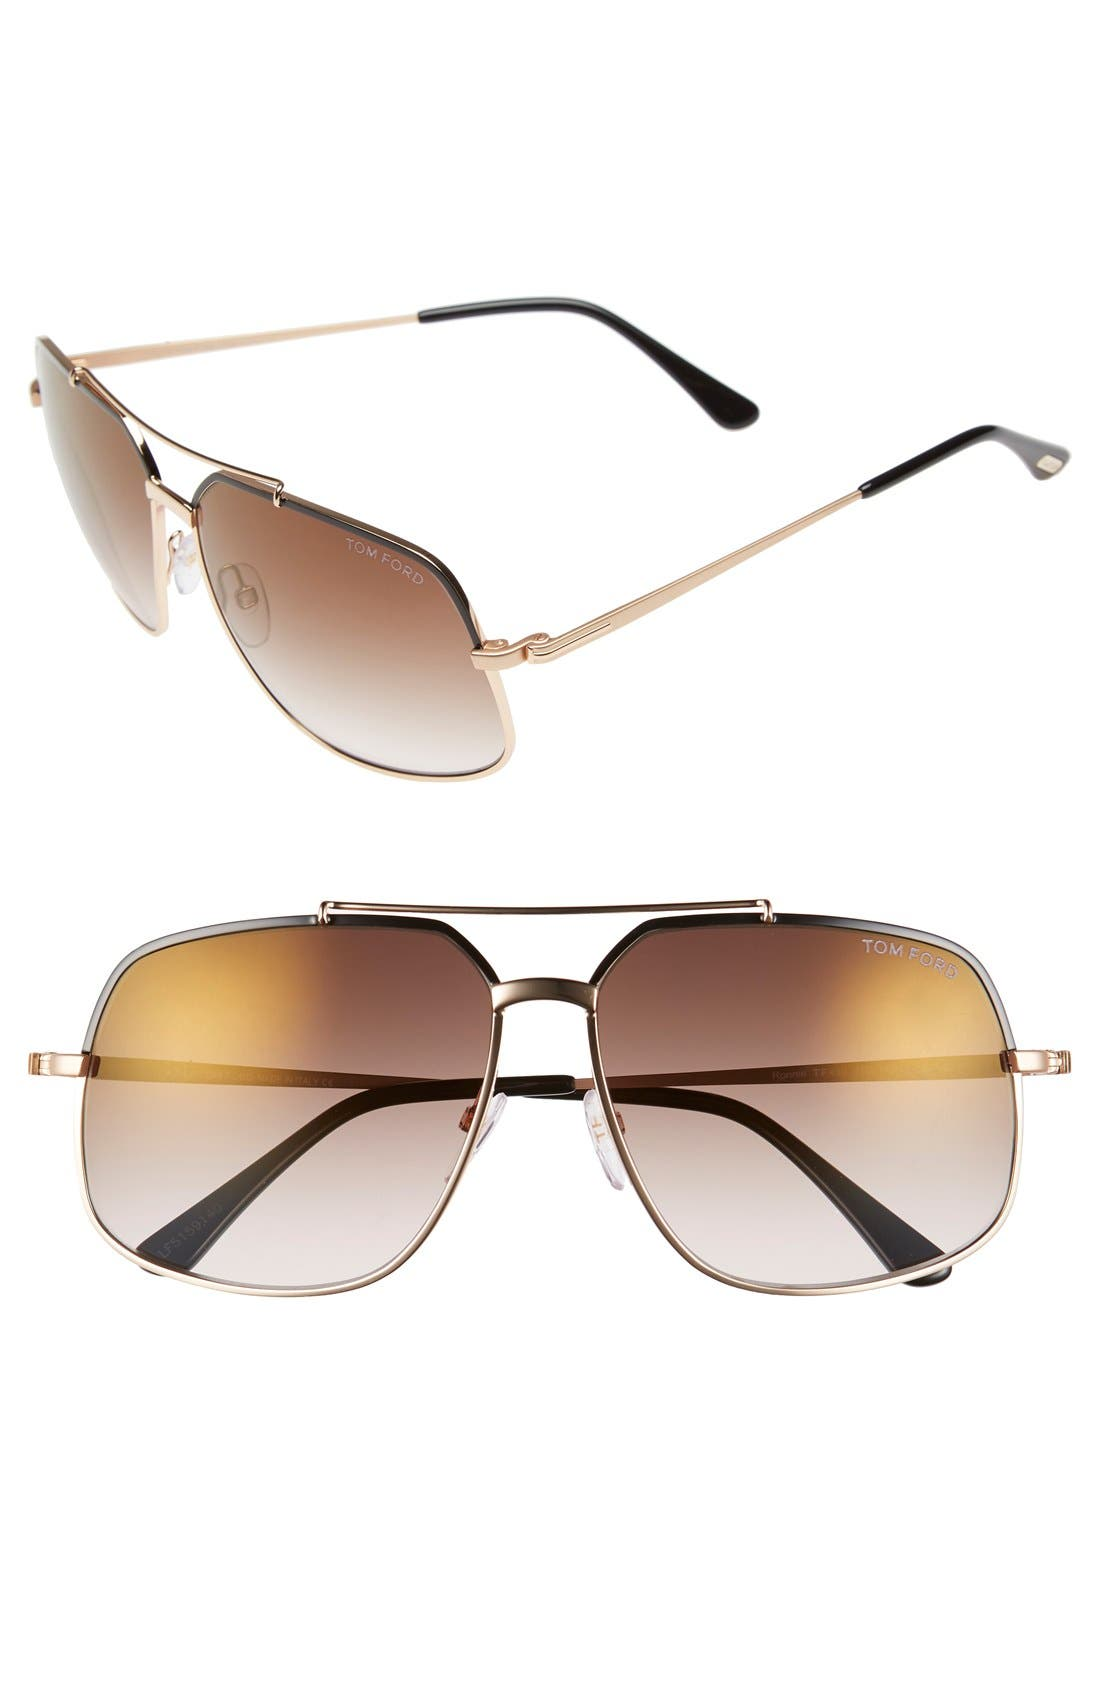 TOM FORD Ronnie 60mm Aviator Sunglasses